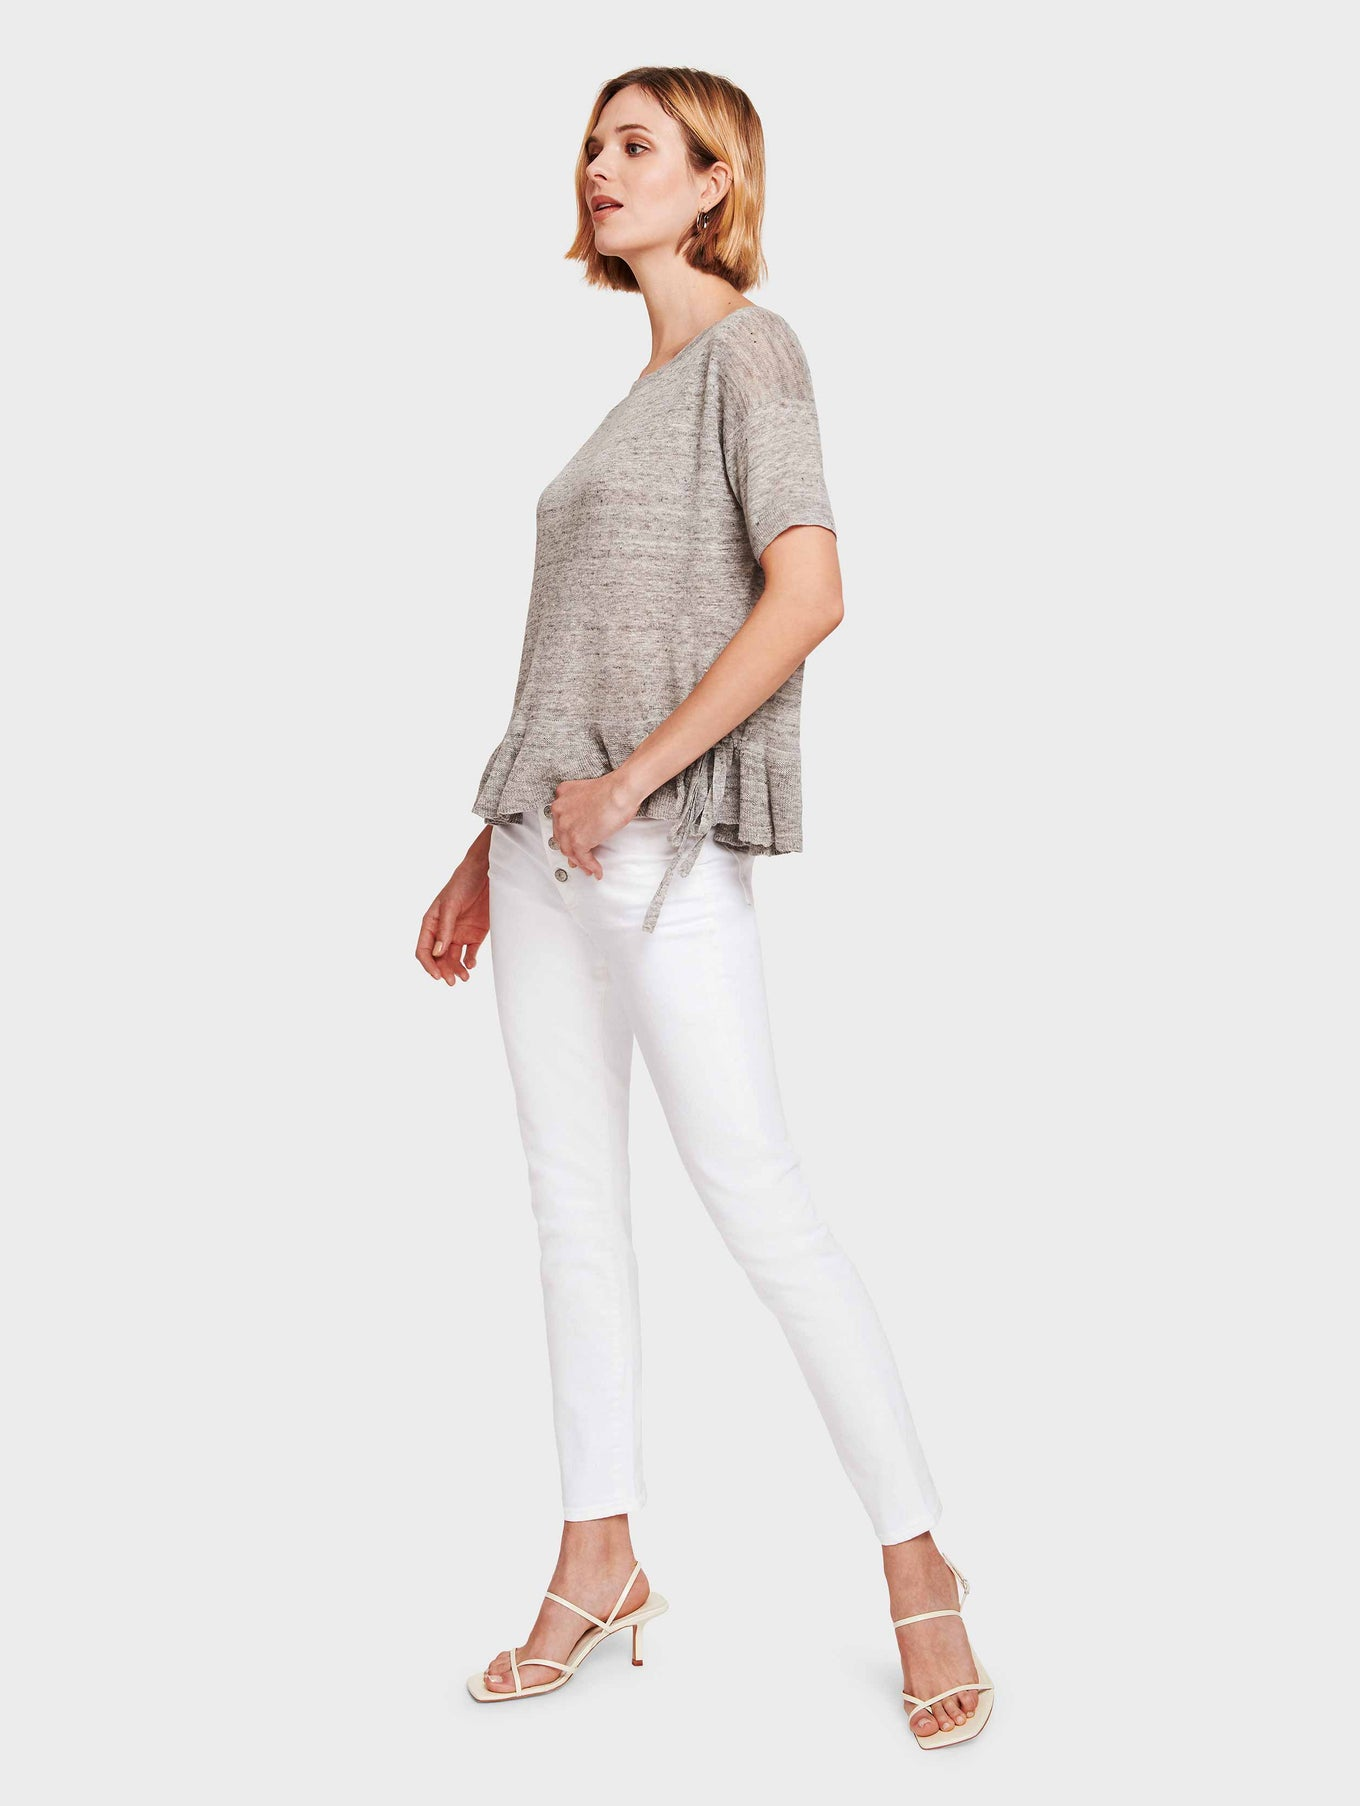 Linen Drawcord Ruffle Tee - Shadow Heather - Image 2